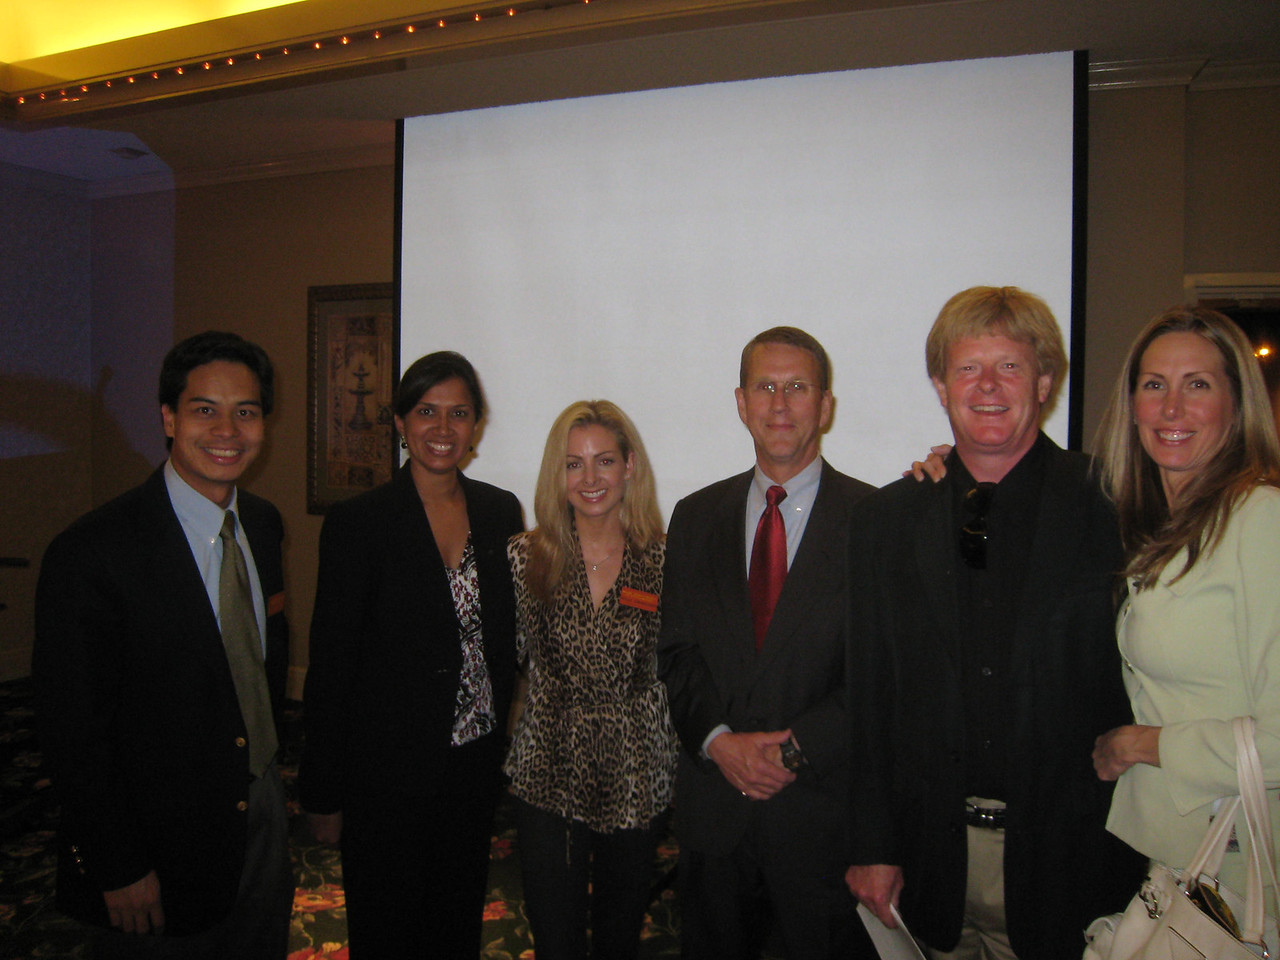 Peter Joson,Unkn, Holly Spanggord, Speaker Bowes Hammill, Brent Norman, Cory Brame